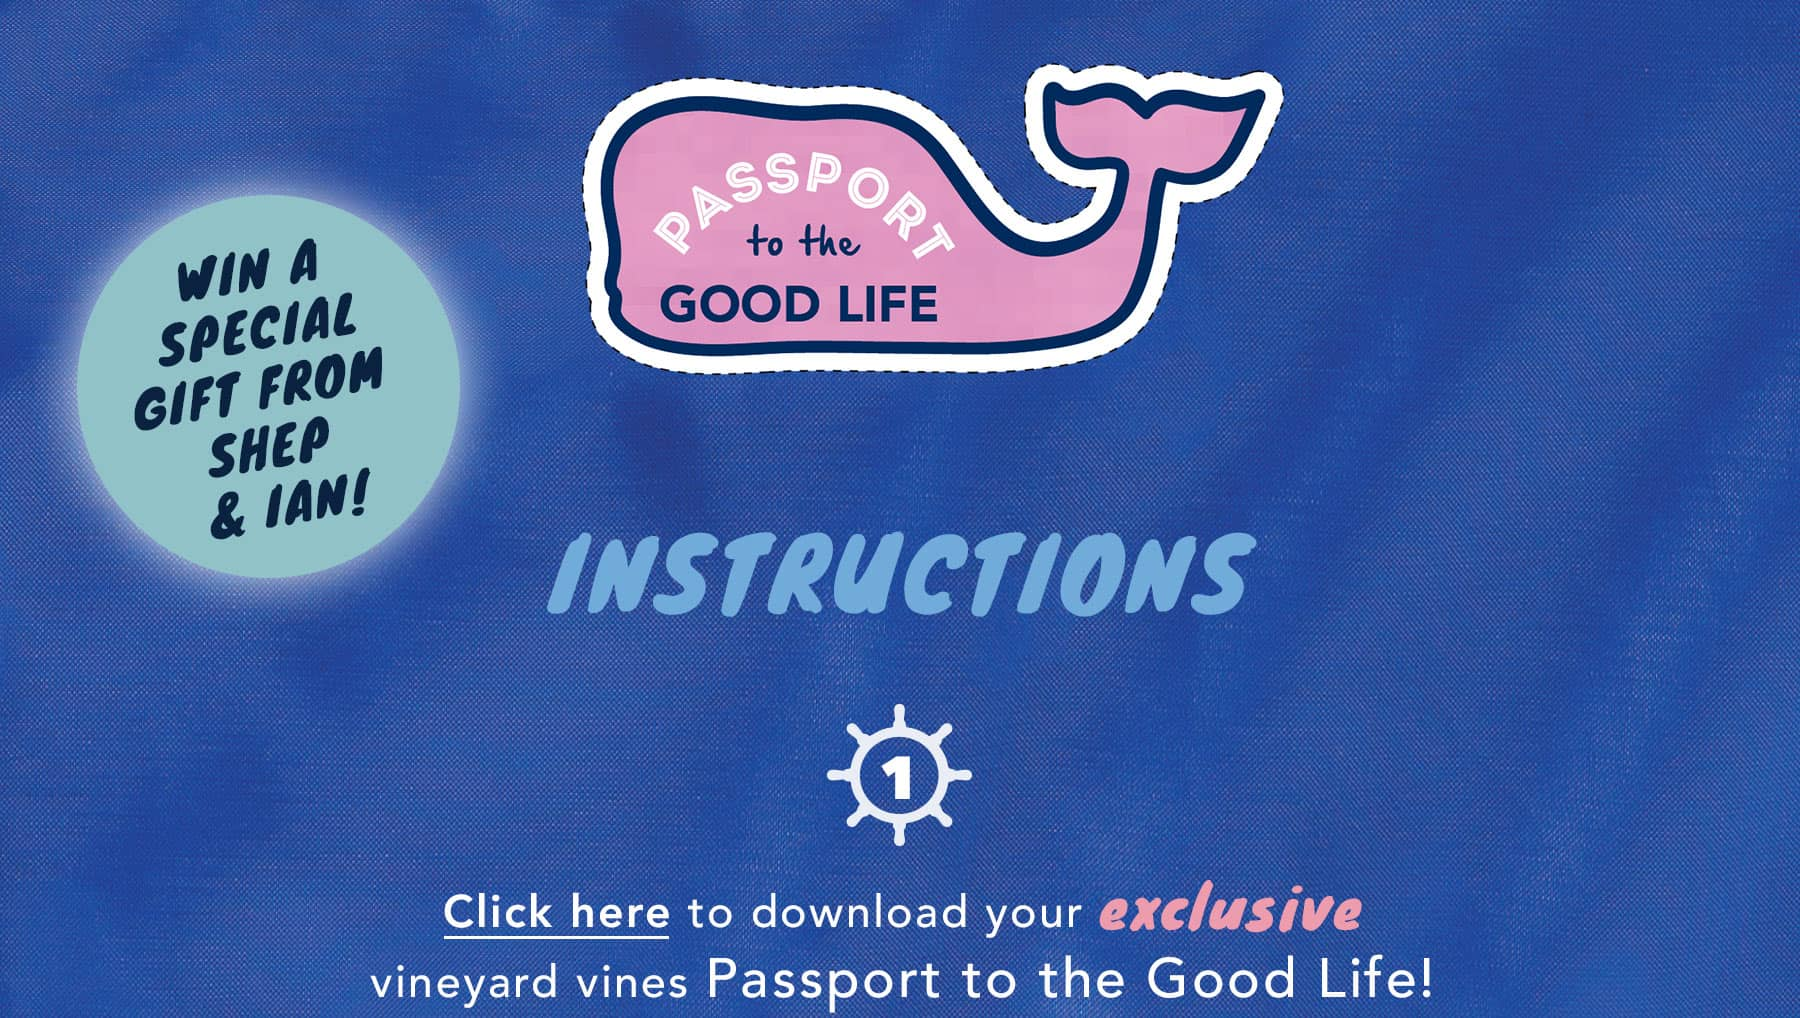 Passport to the Good Life. You Can win a Special gift from Shep & Ian. Instructions: Click Here to download your exclusive vineyard vines Passport to the Good Life